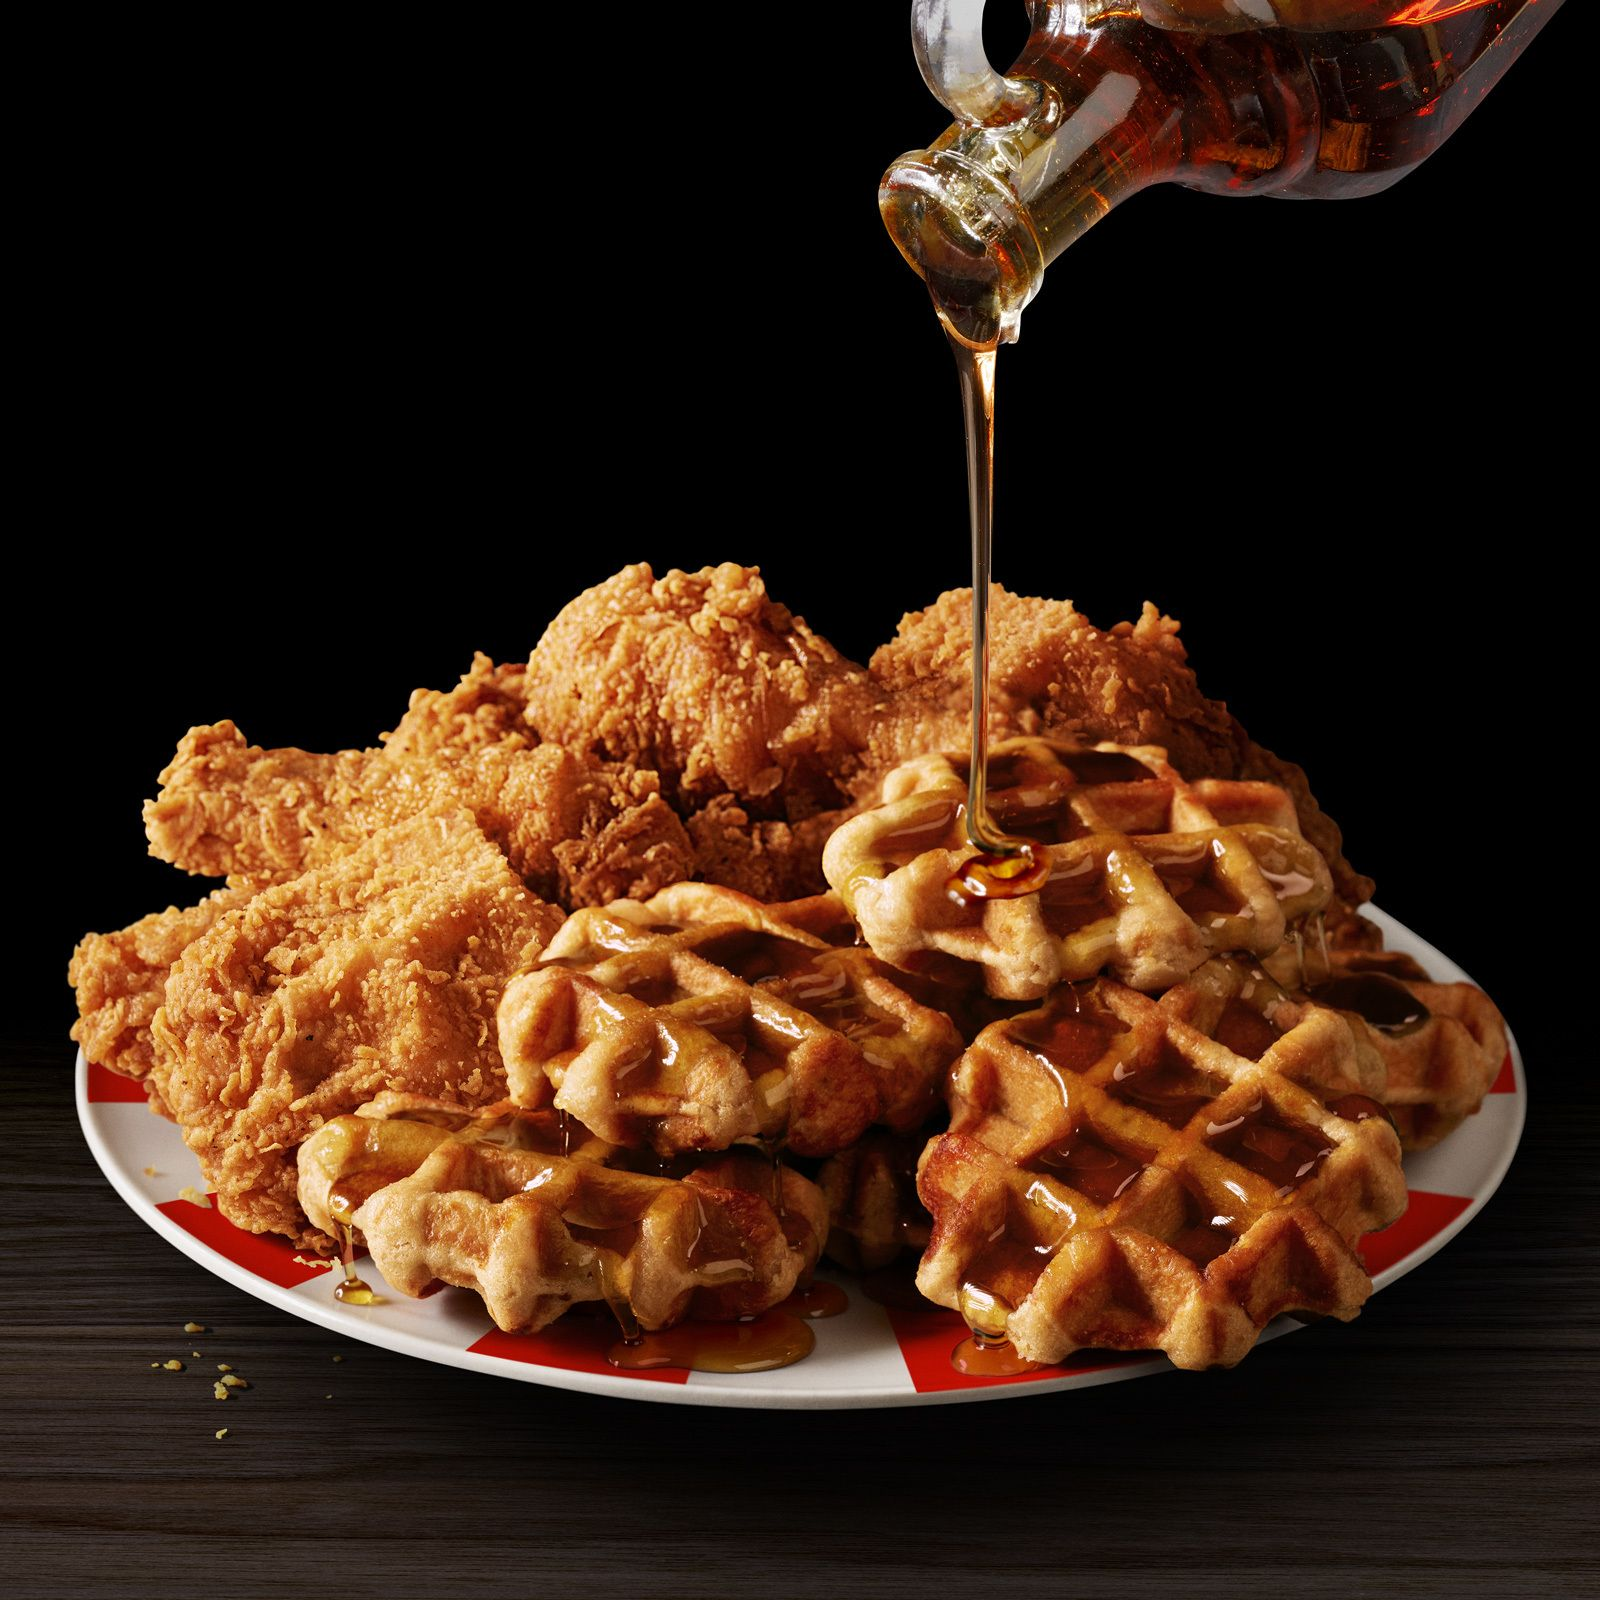 KFC's Chicken And Waffles Are Coming Back After Customers Begged For Their Return